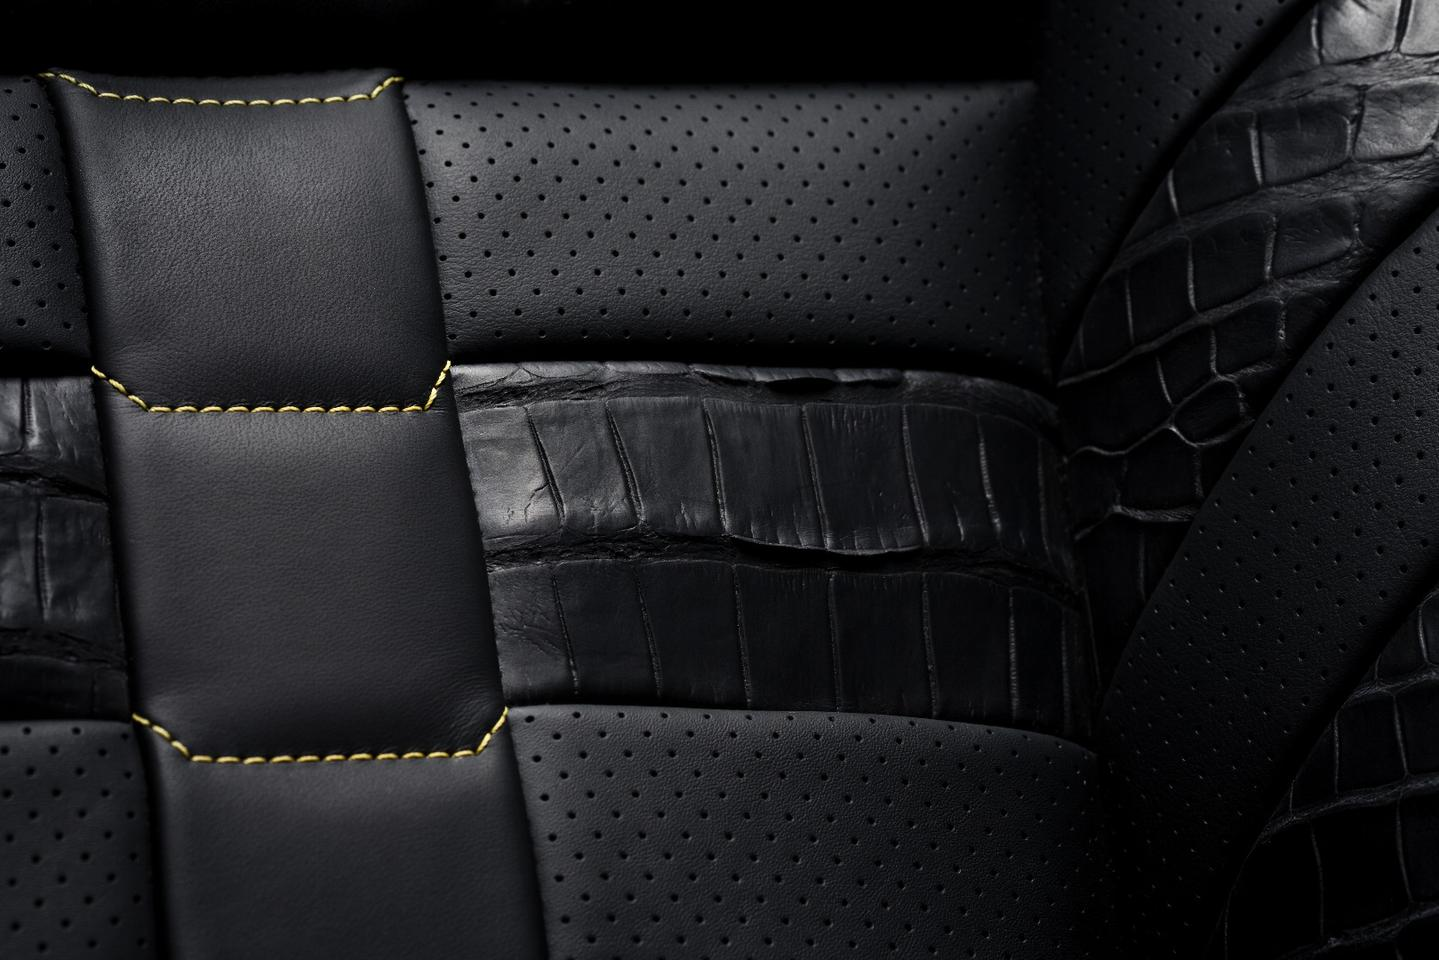 It's not for everyone, but the alligator does provide interesting contrast in the seats